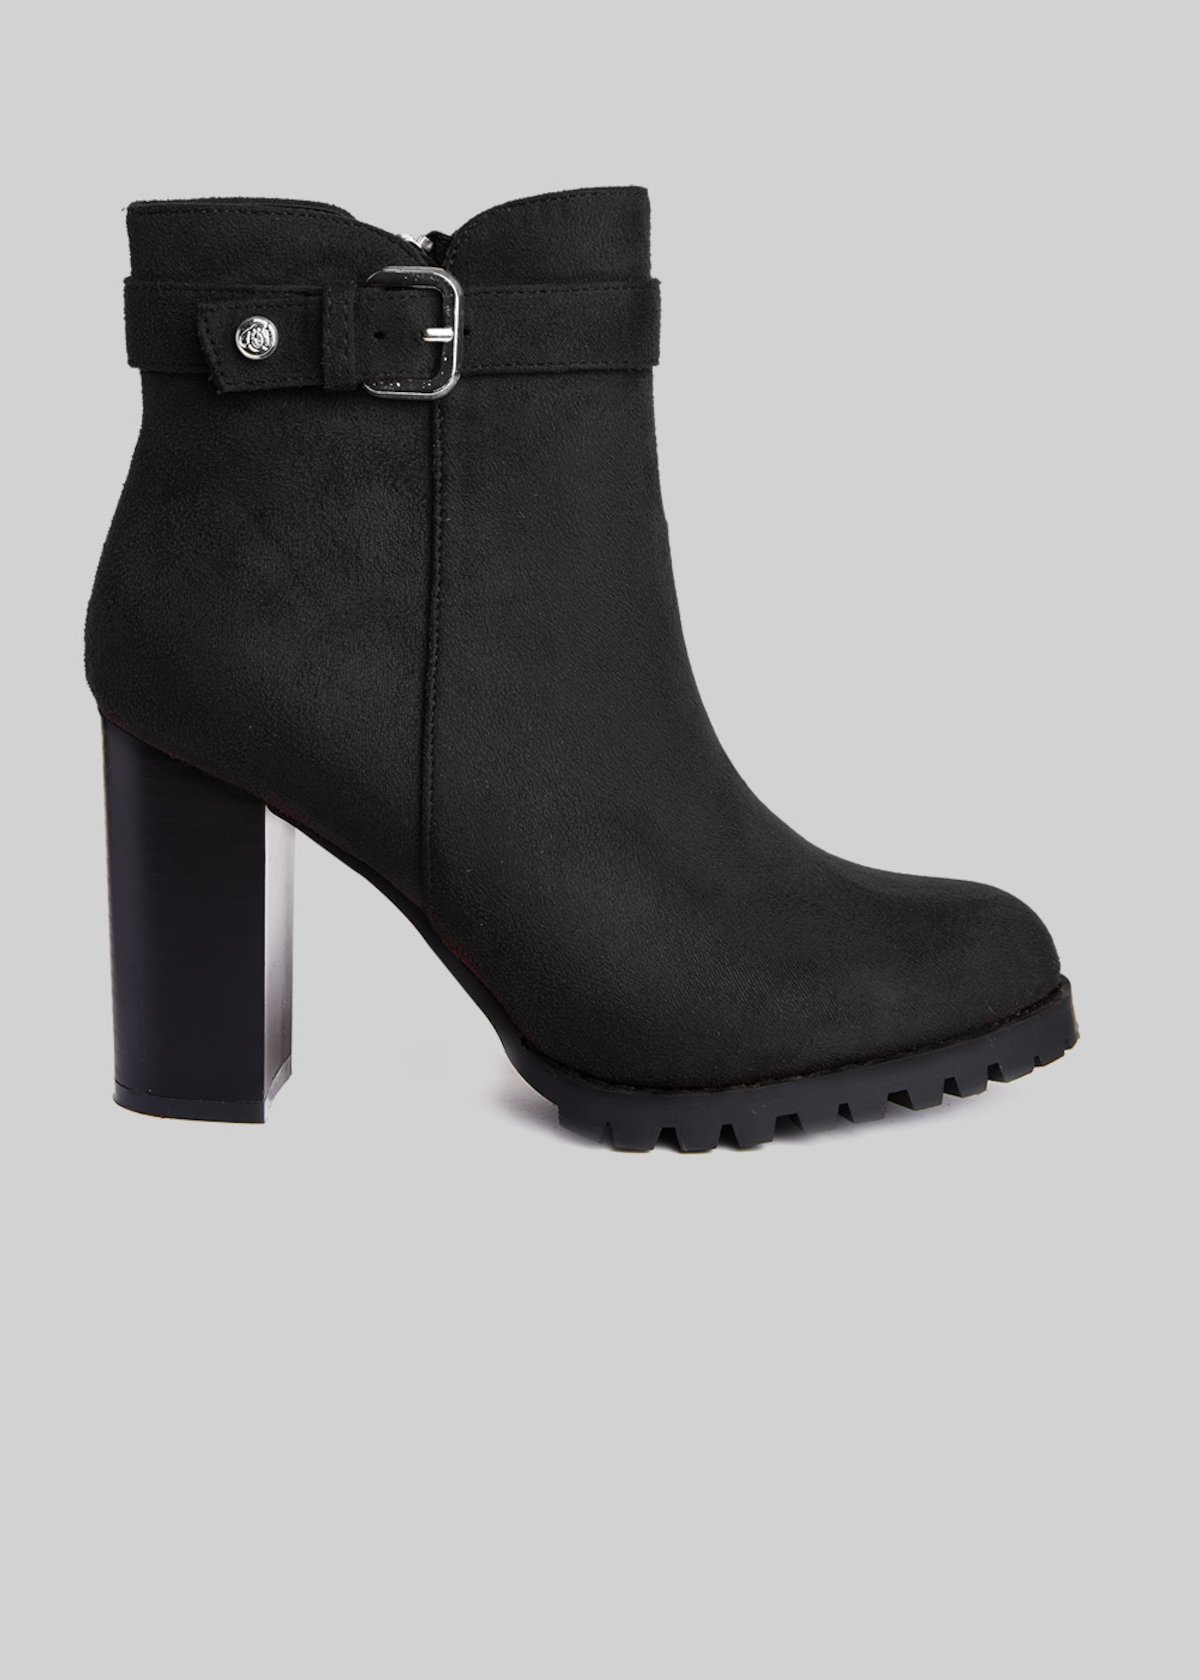 Shoma imitation Suede Ankle Boots with black heel - Black